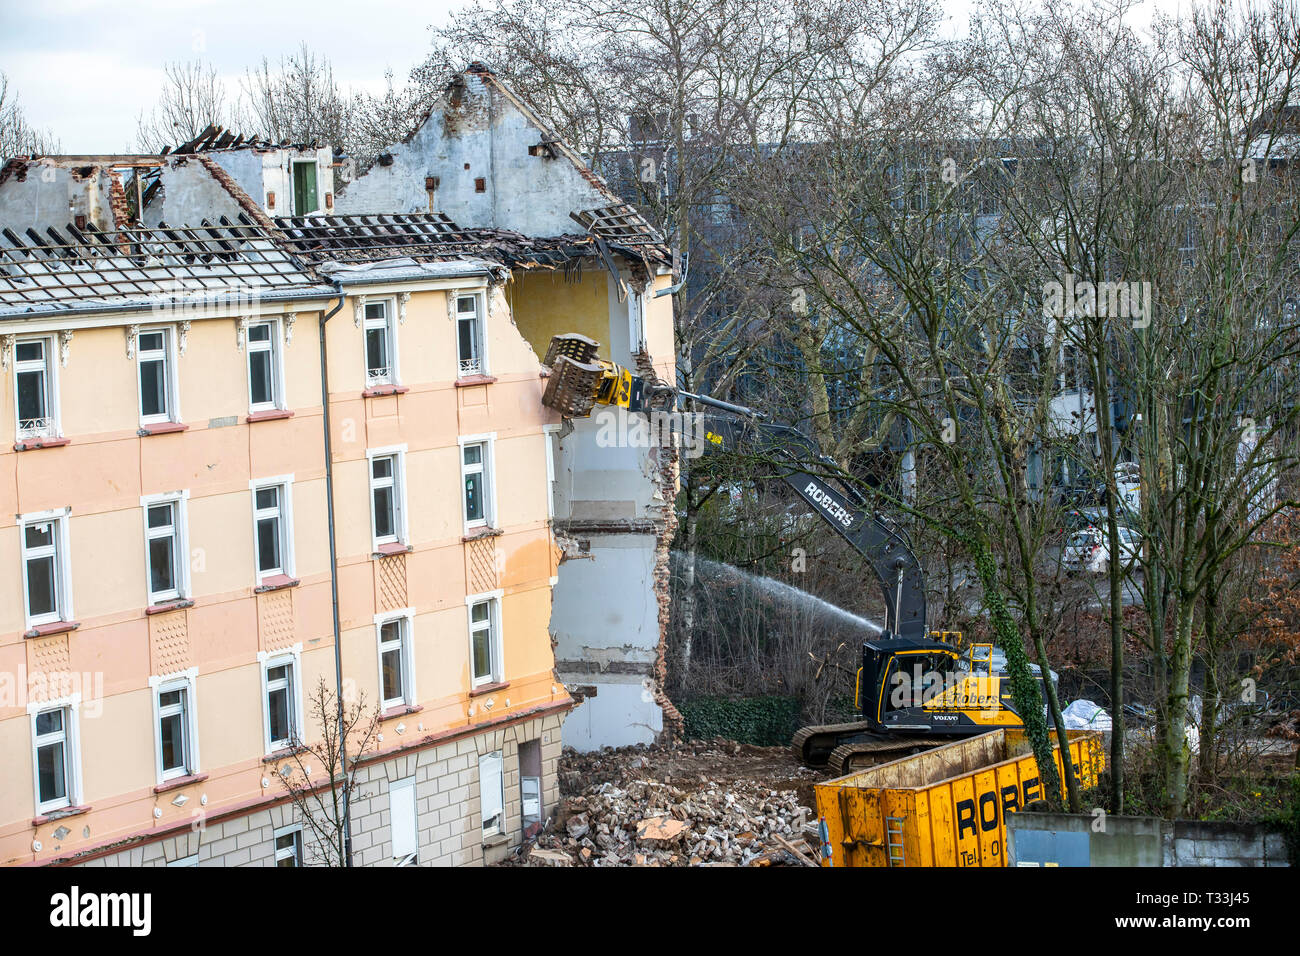 Demolition of an older residential building, this is where new rental apartments are being built, Stock Photo